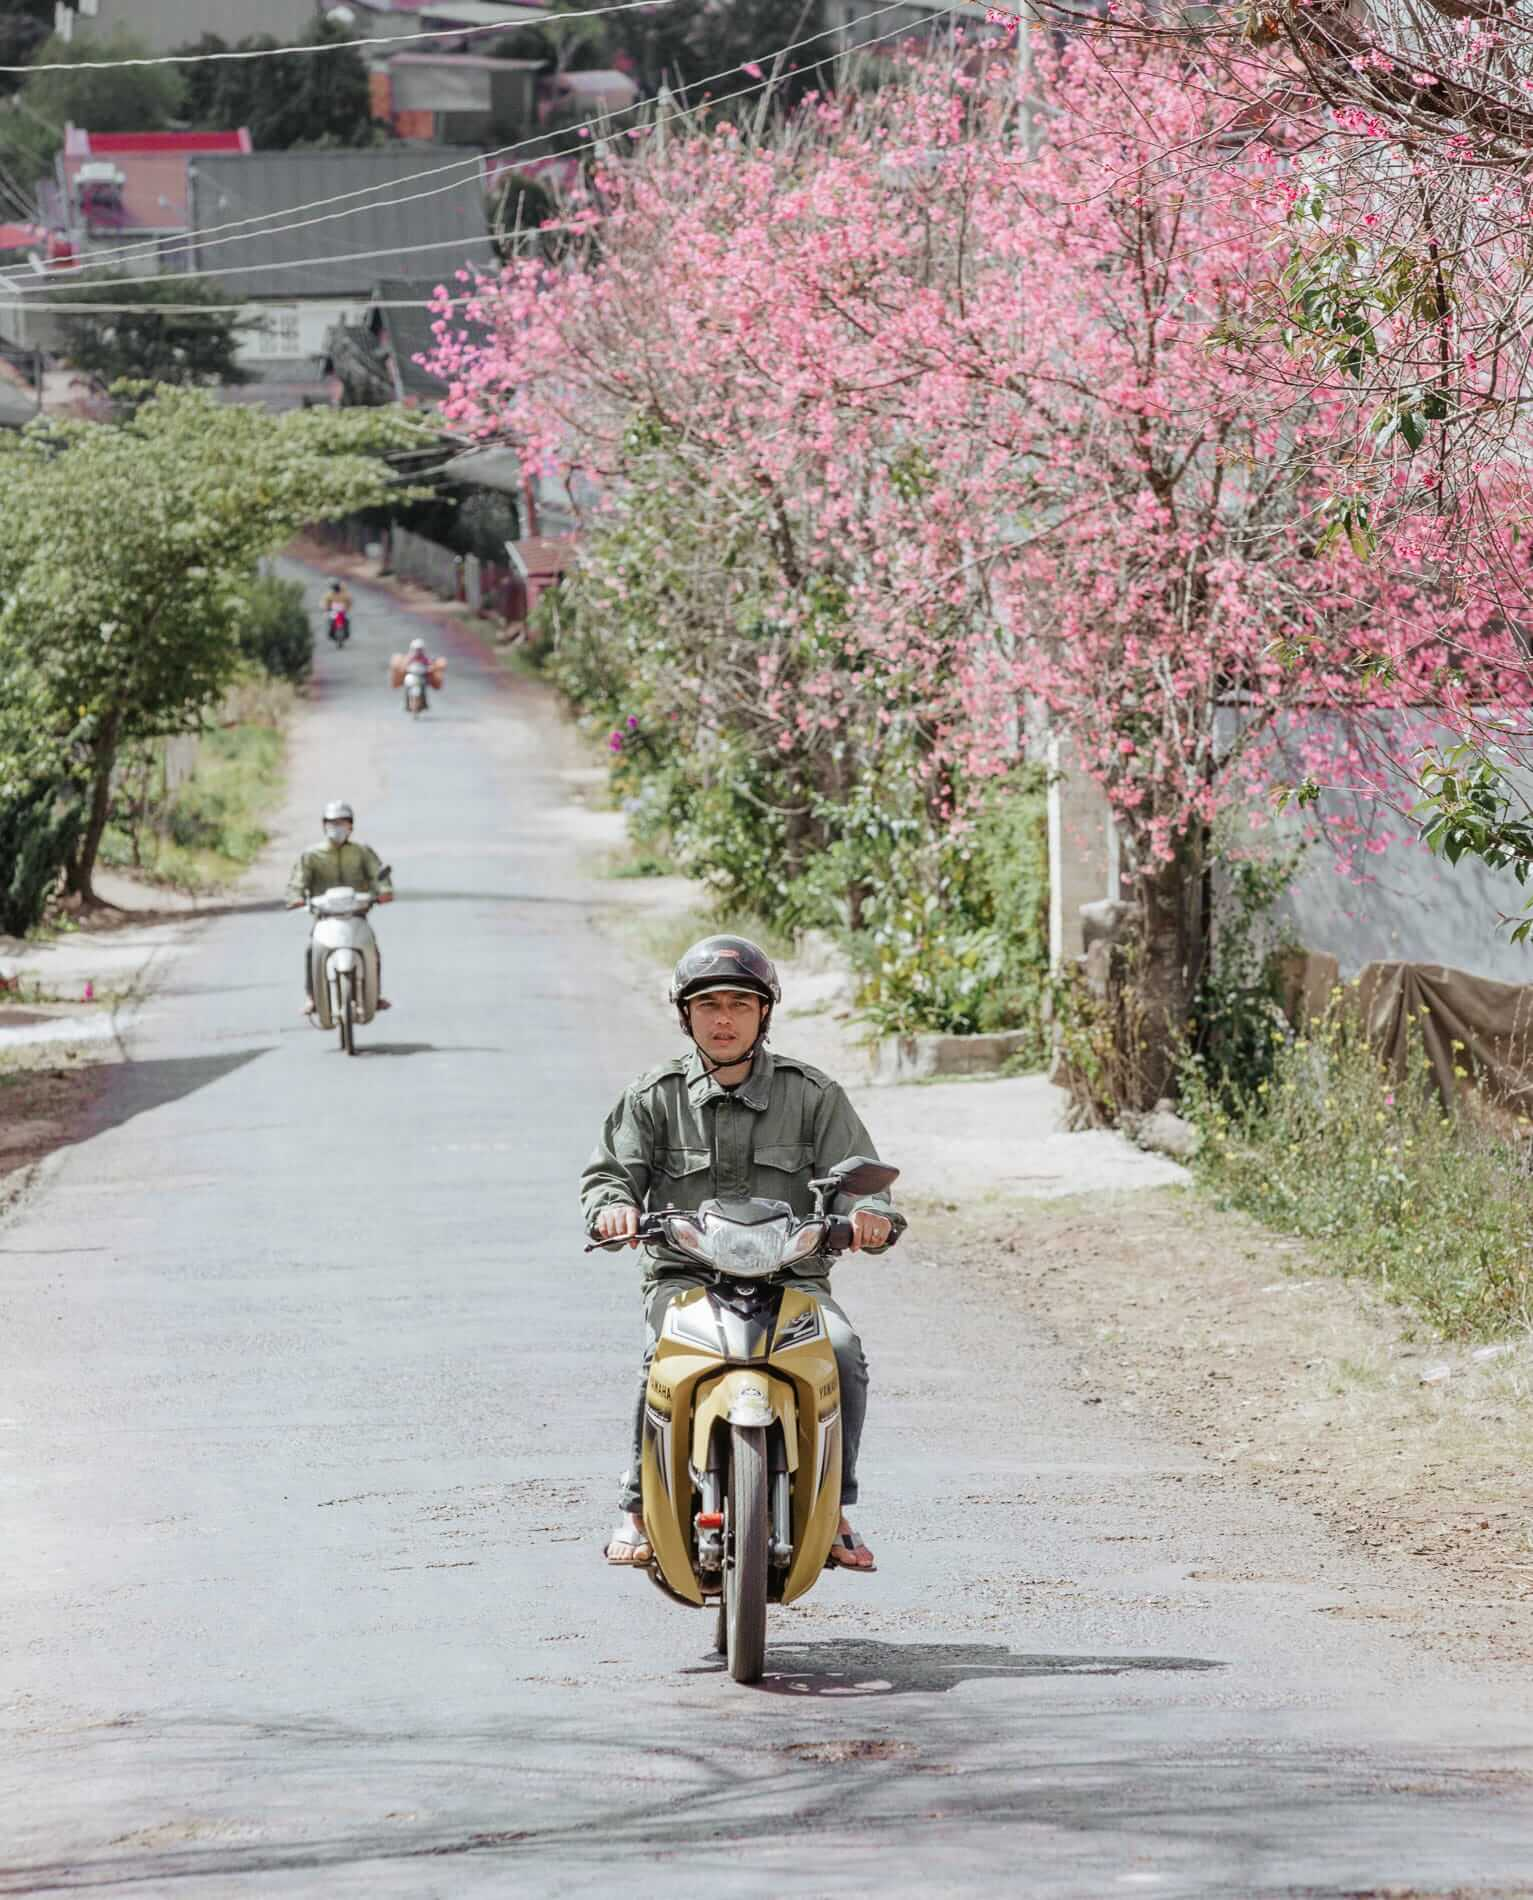 pink blossoms and a motorcyclist